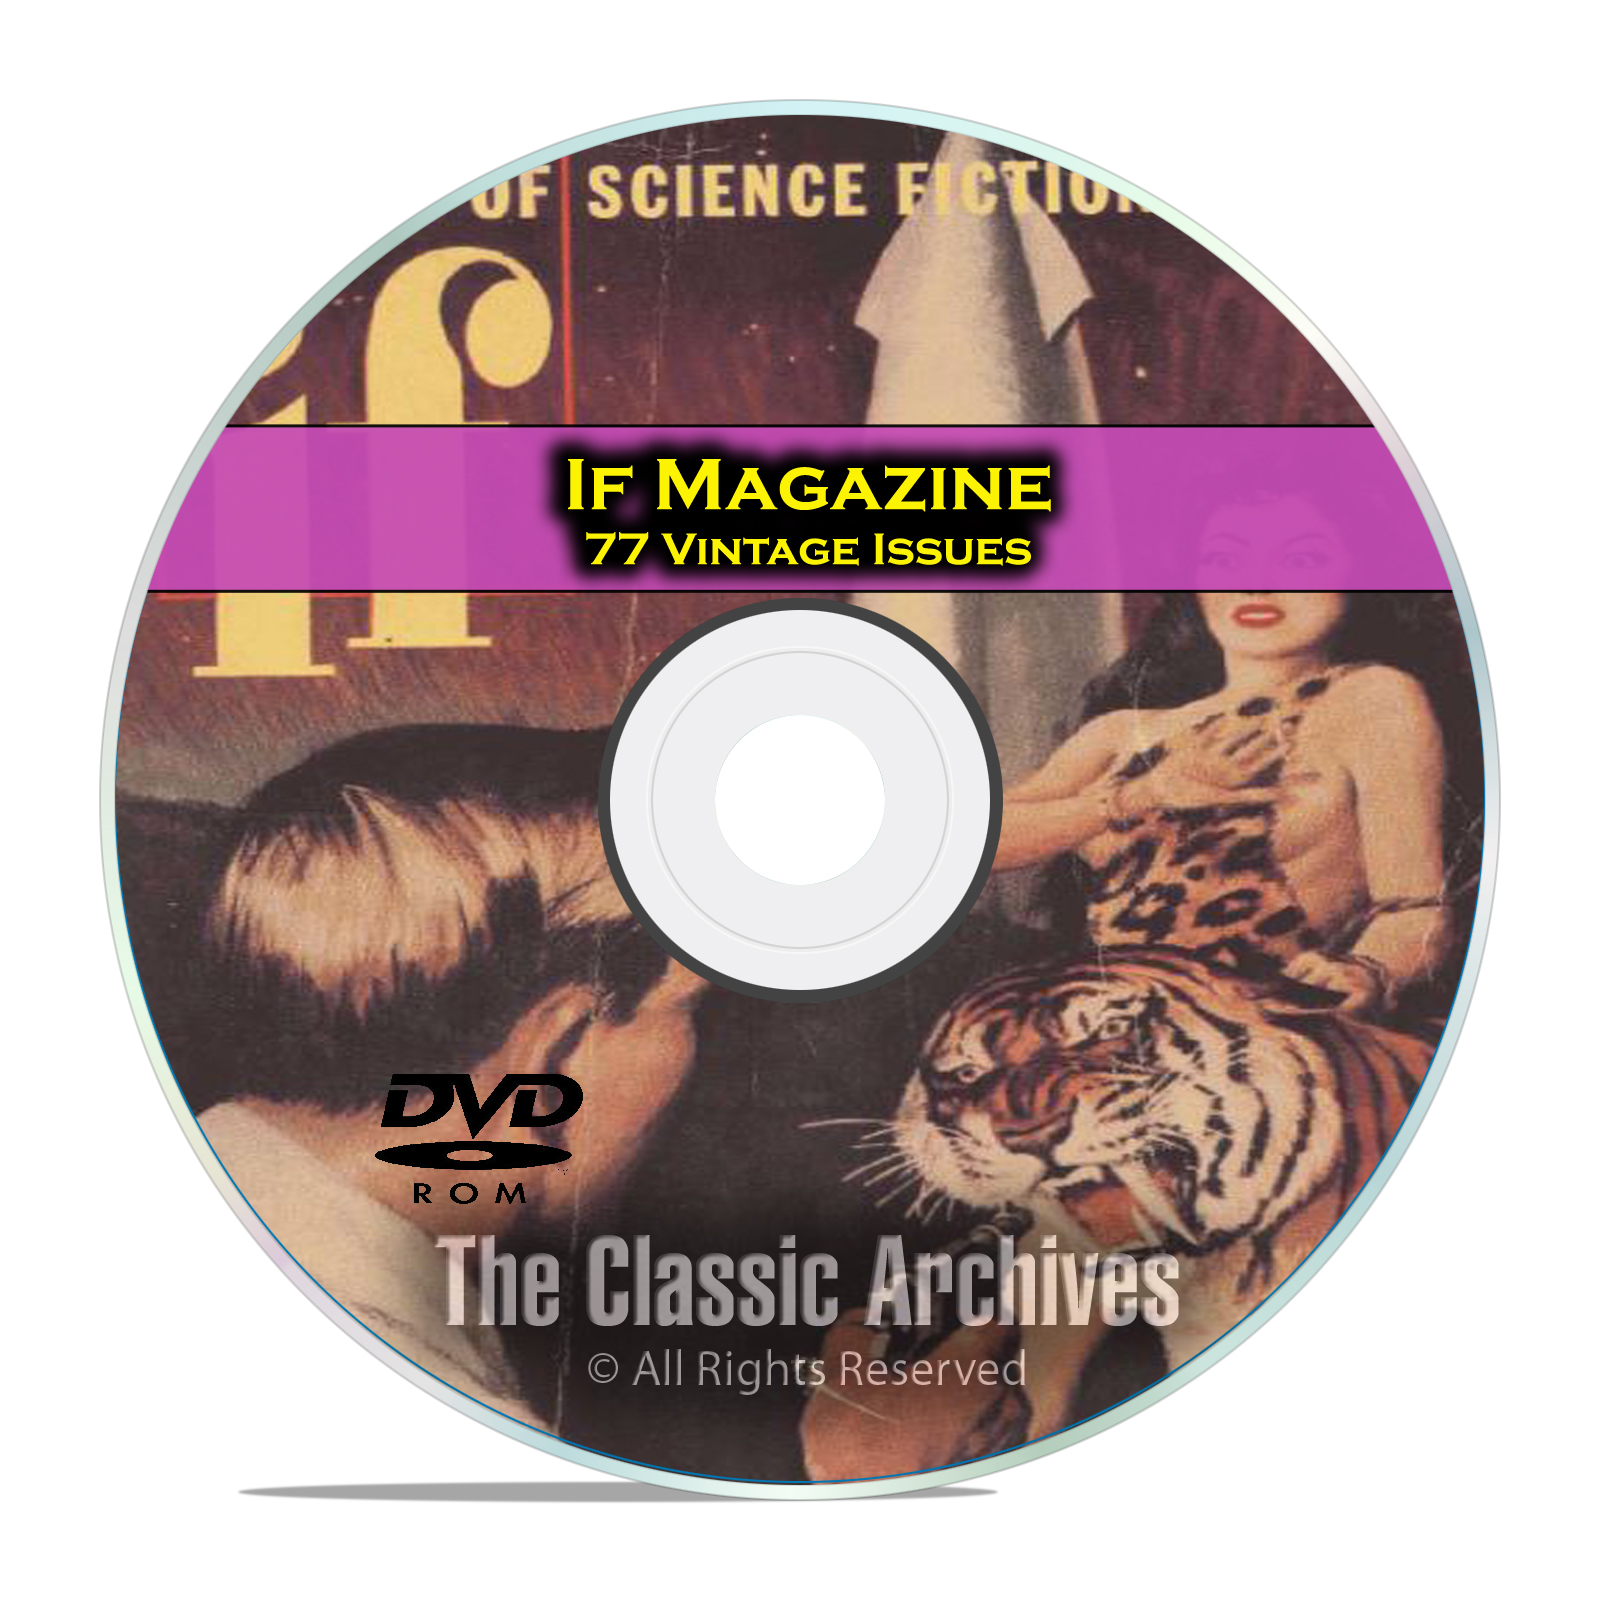 IF Magazine, 77 Vintage Pulp Issues, Golden Age Science Fiction DVD